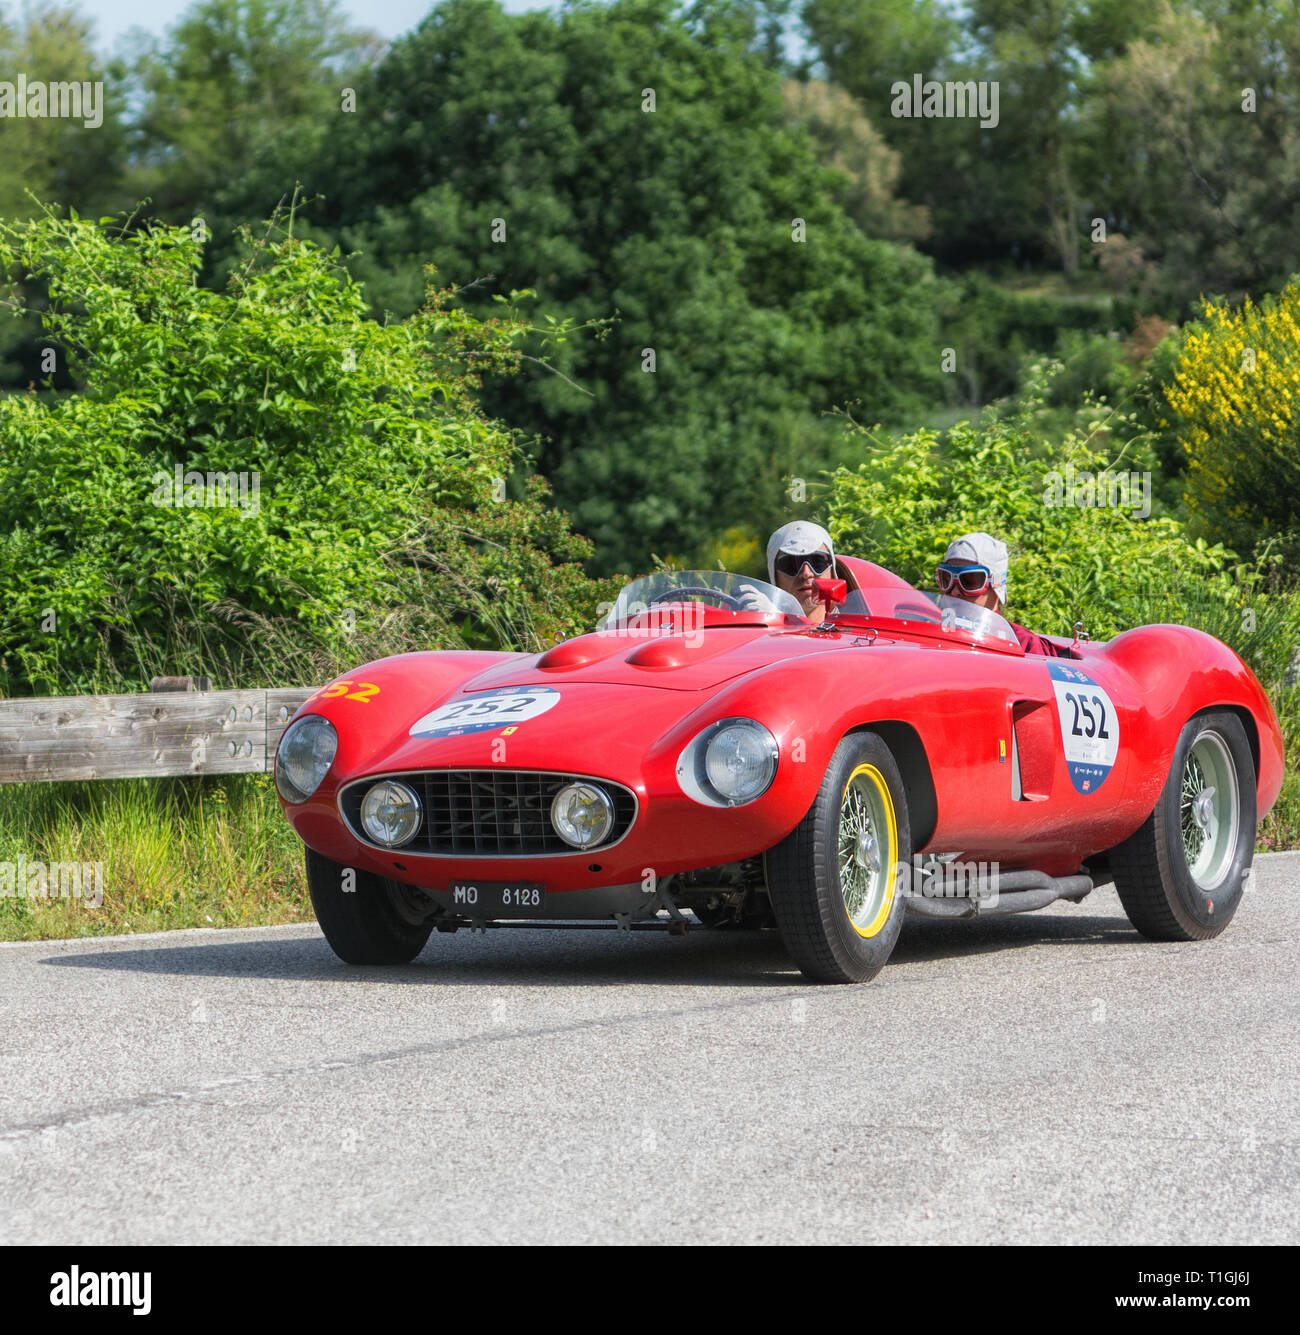 FERRARI 857 S 1955 on an old racing car in rally Mille